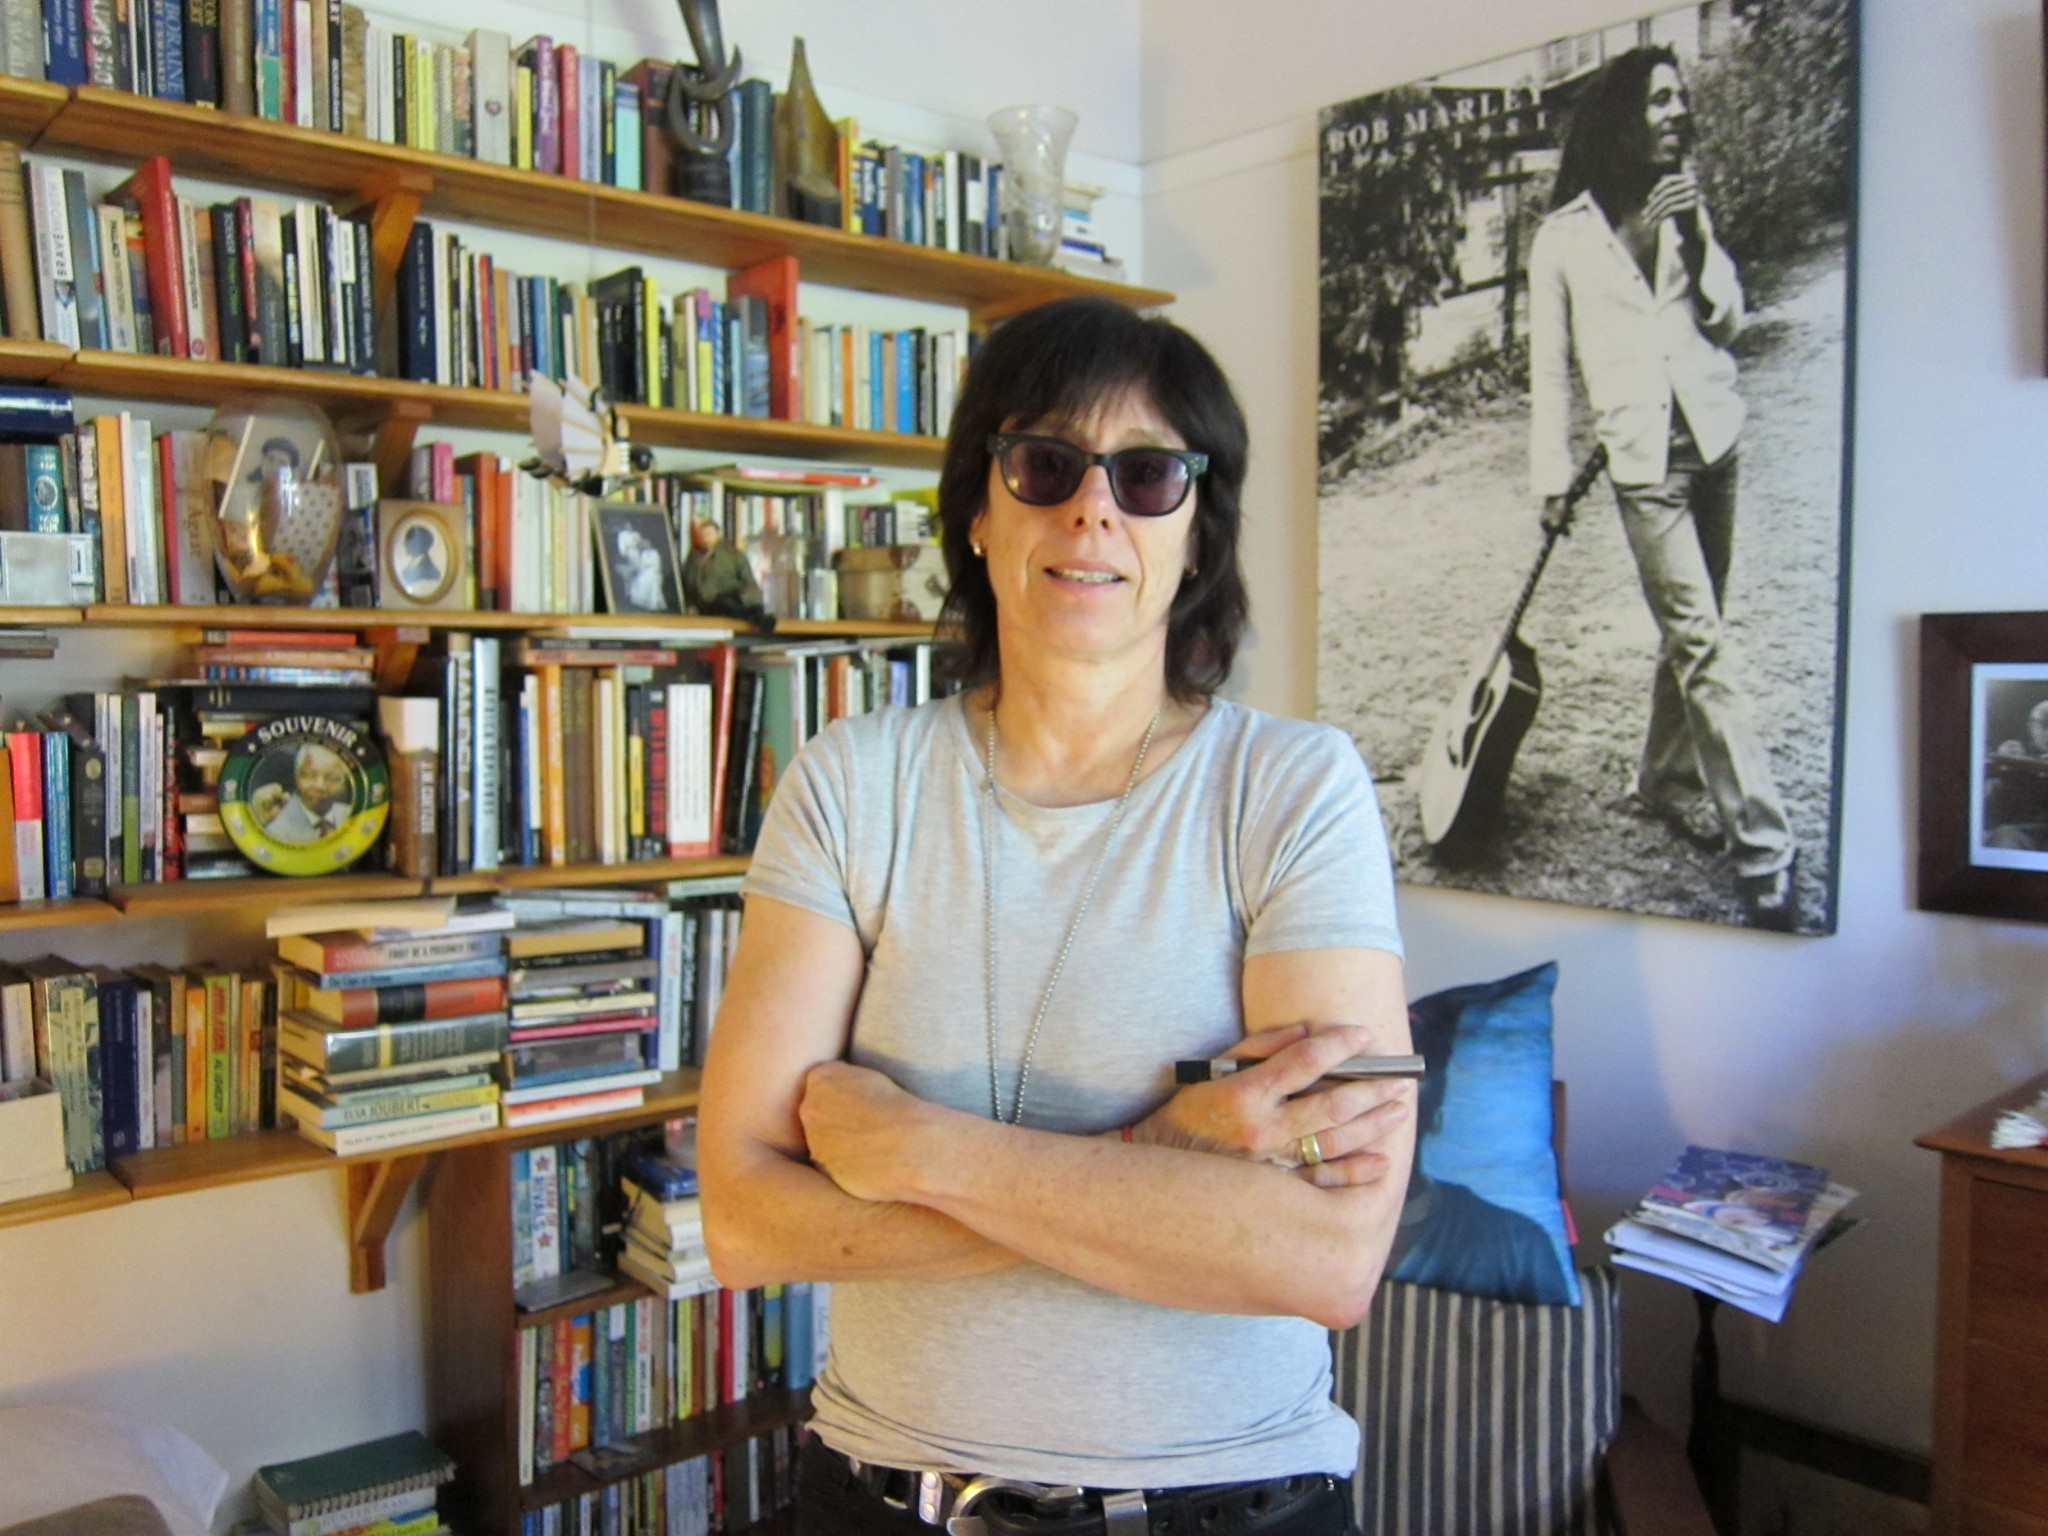 Cape Town-based journalist and author Marianne Thamm